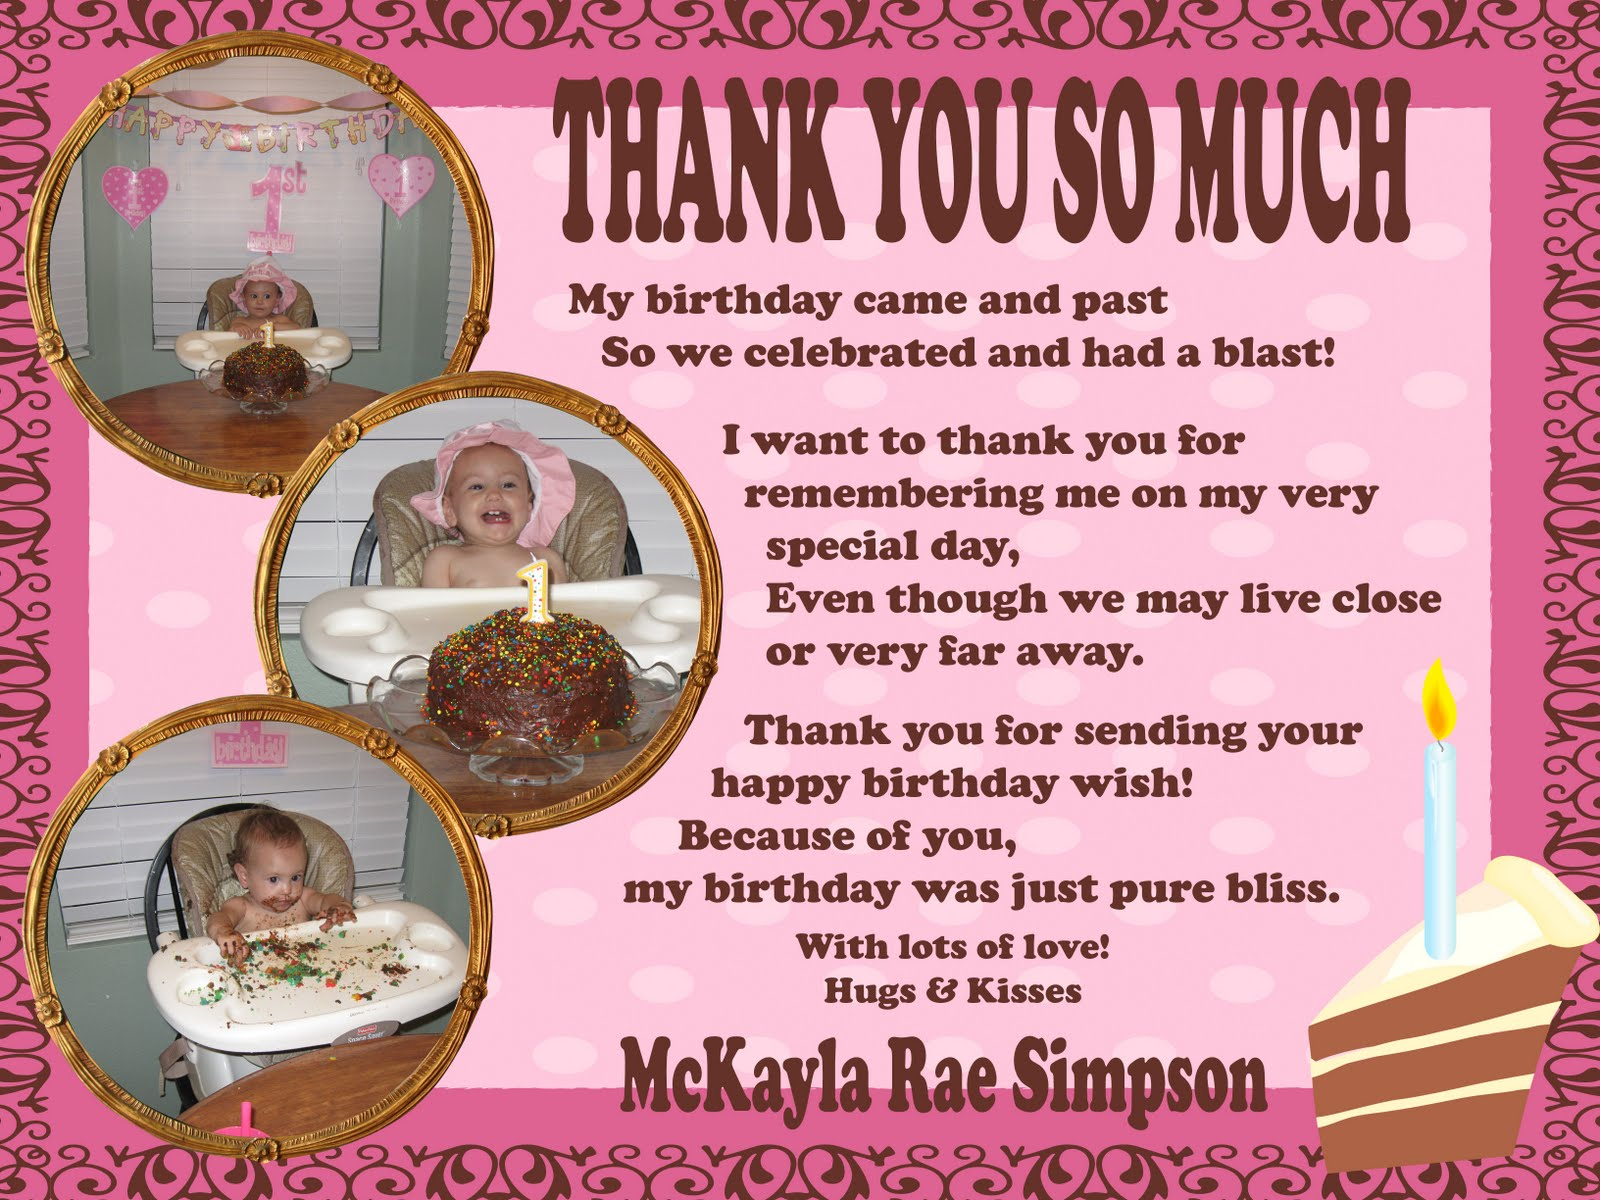 Quotes about birthday thanks 26 quotes m4hsunfo